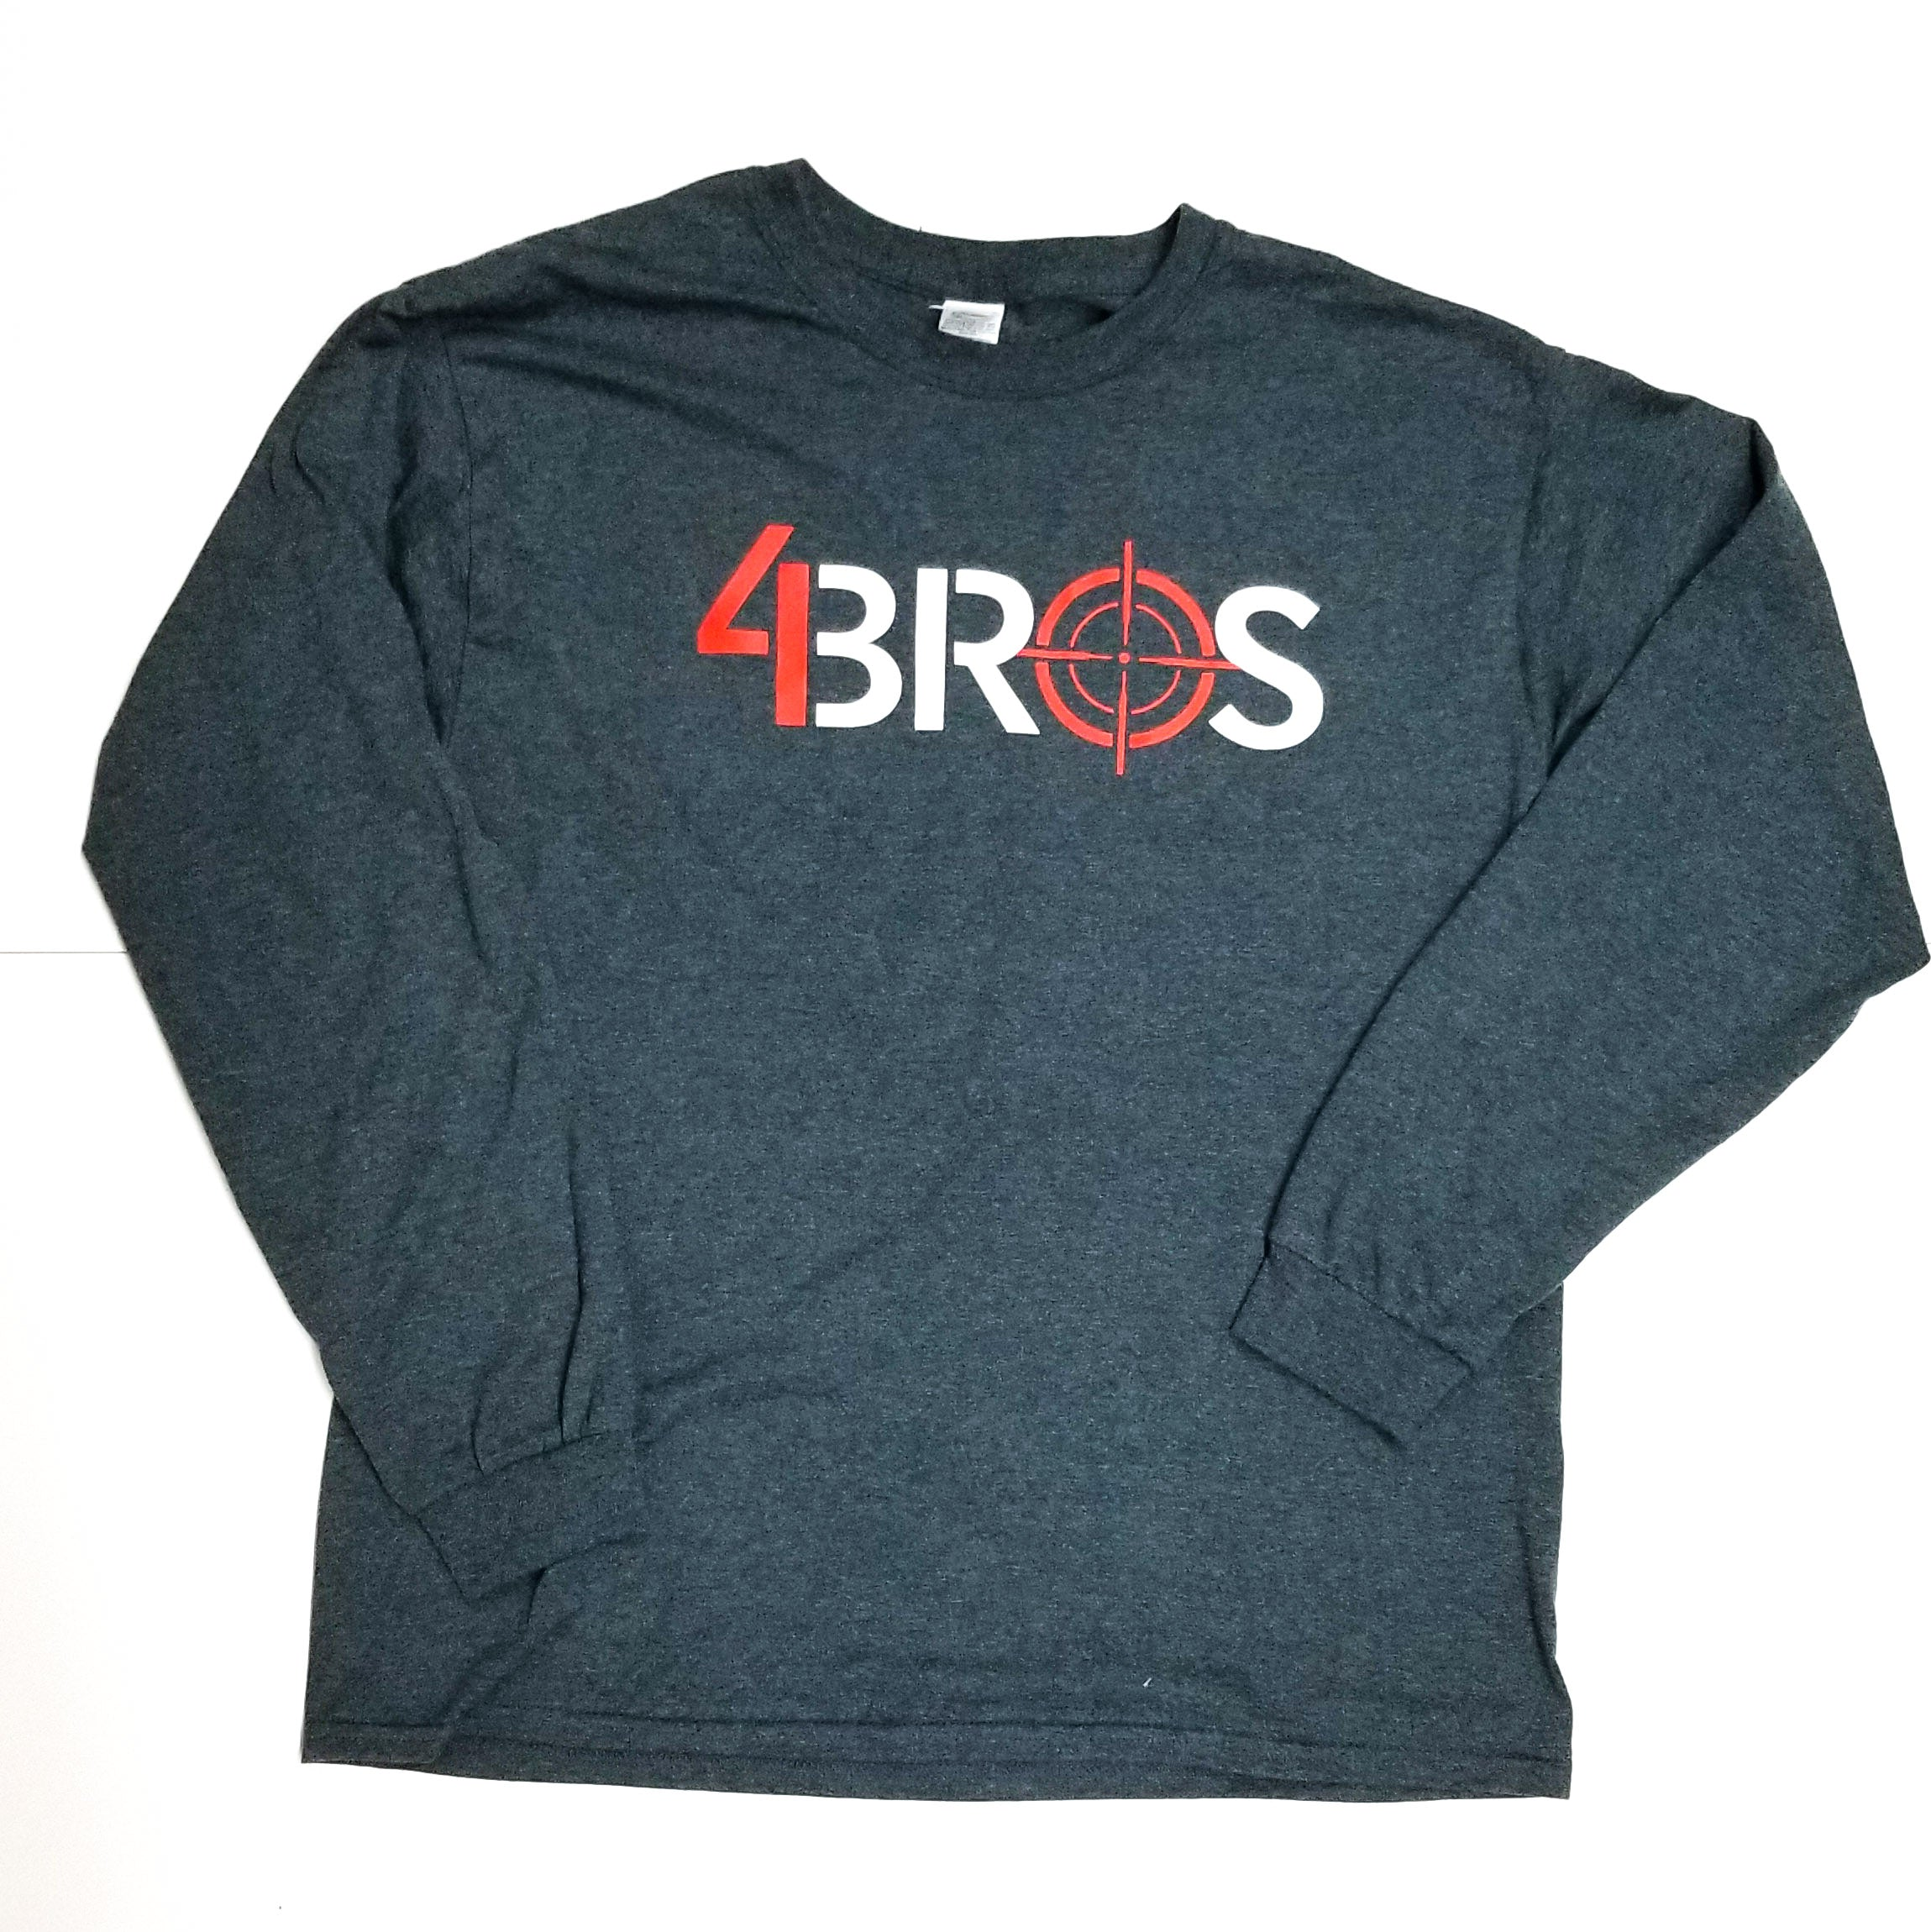 4Bros Long Sleeve T-Shirt